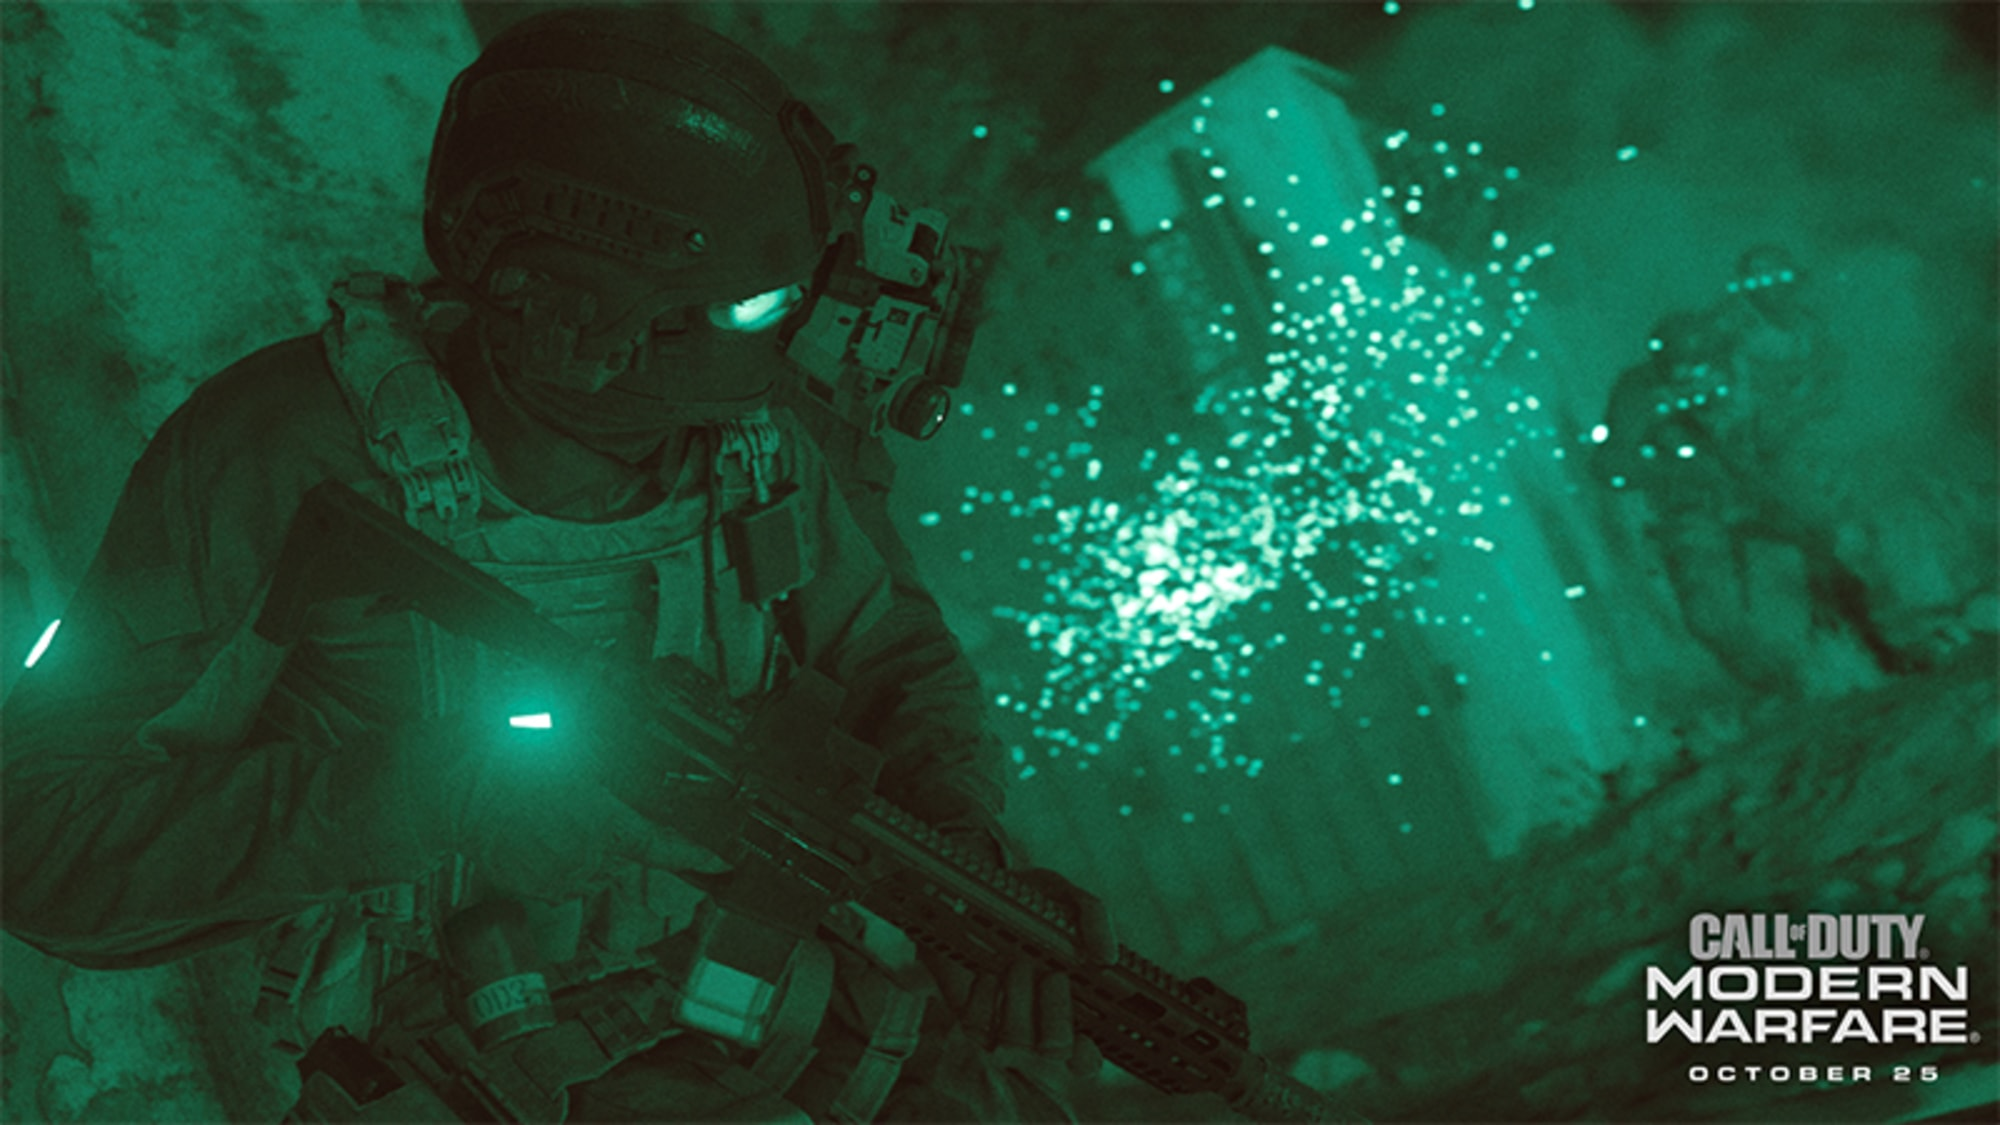 Call Of Duty Modern Warfare 4 Release Date Reveal What We Know